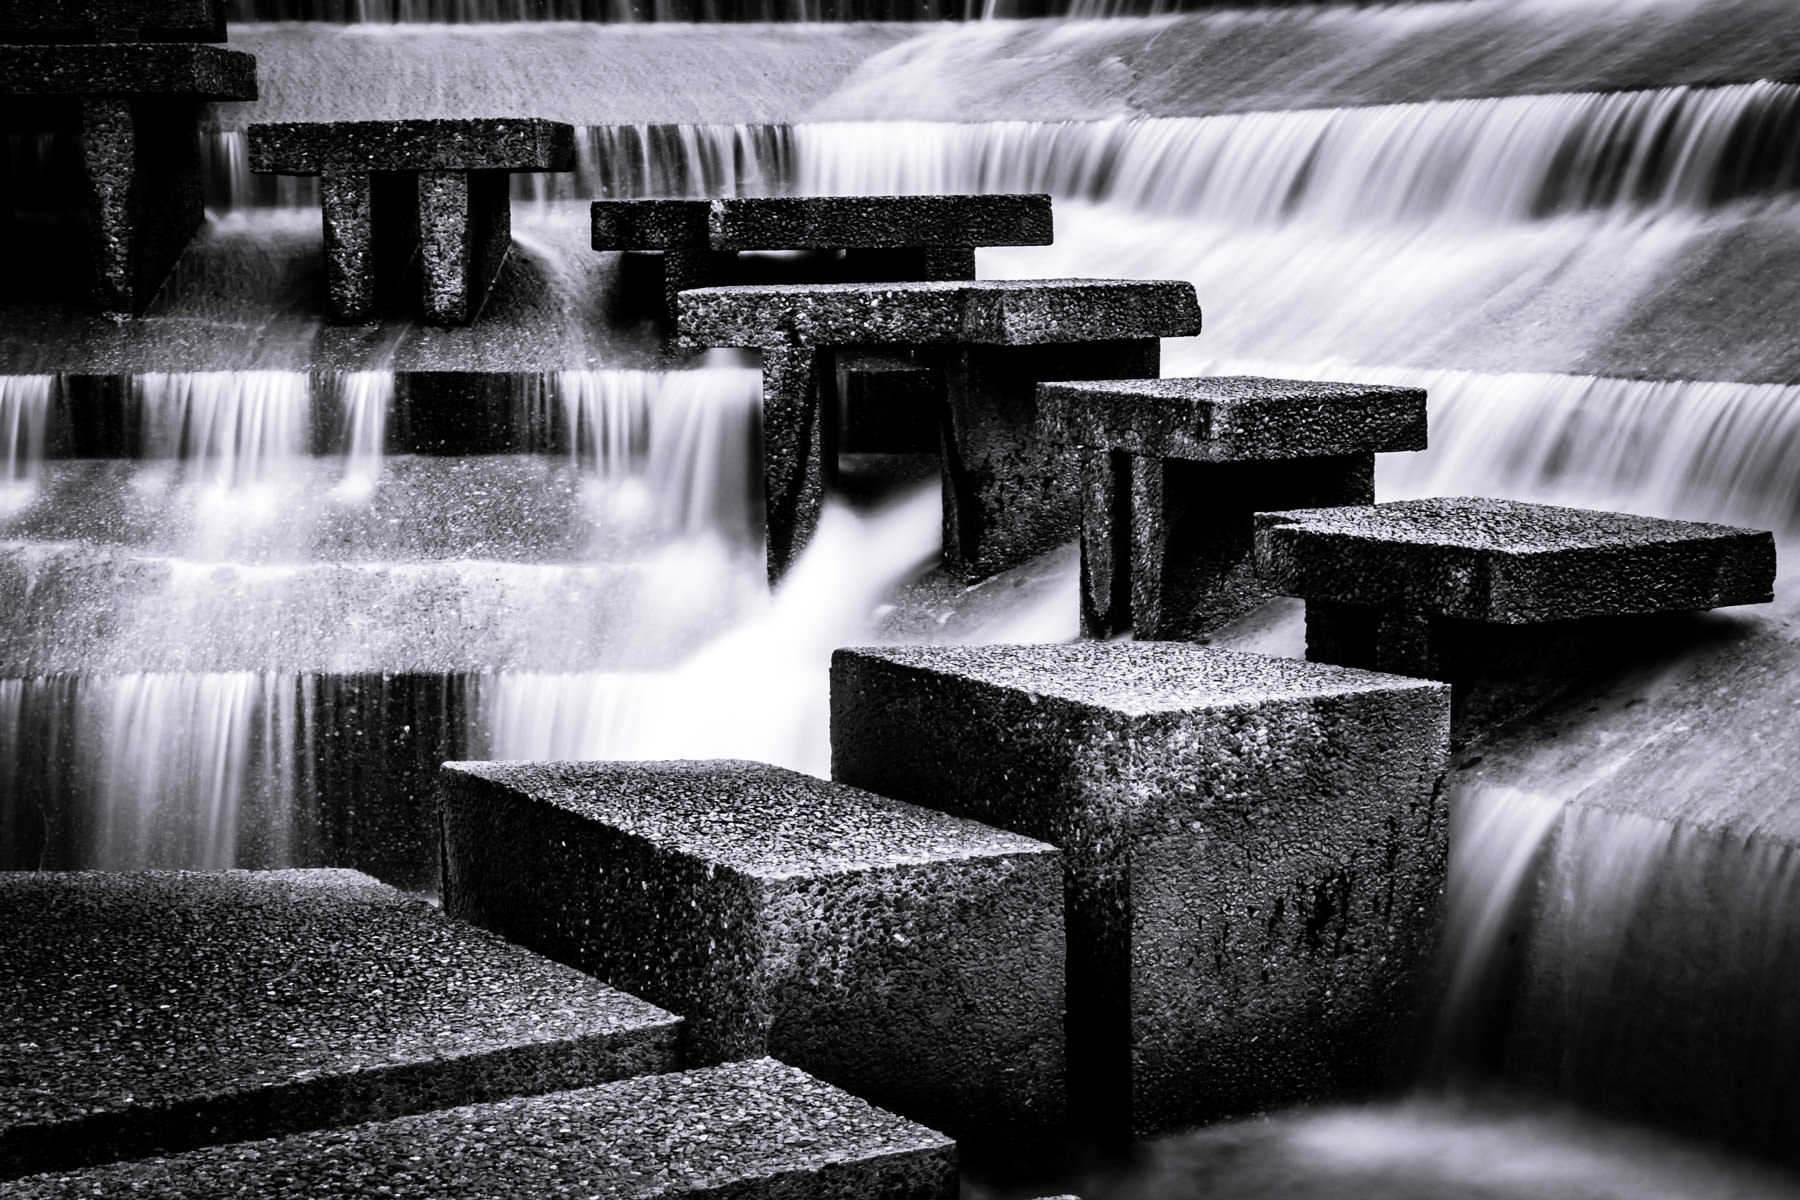 Water cascades around concrete steps at the Fort Worth Water Gardens.